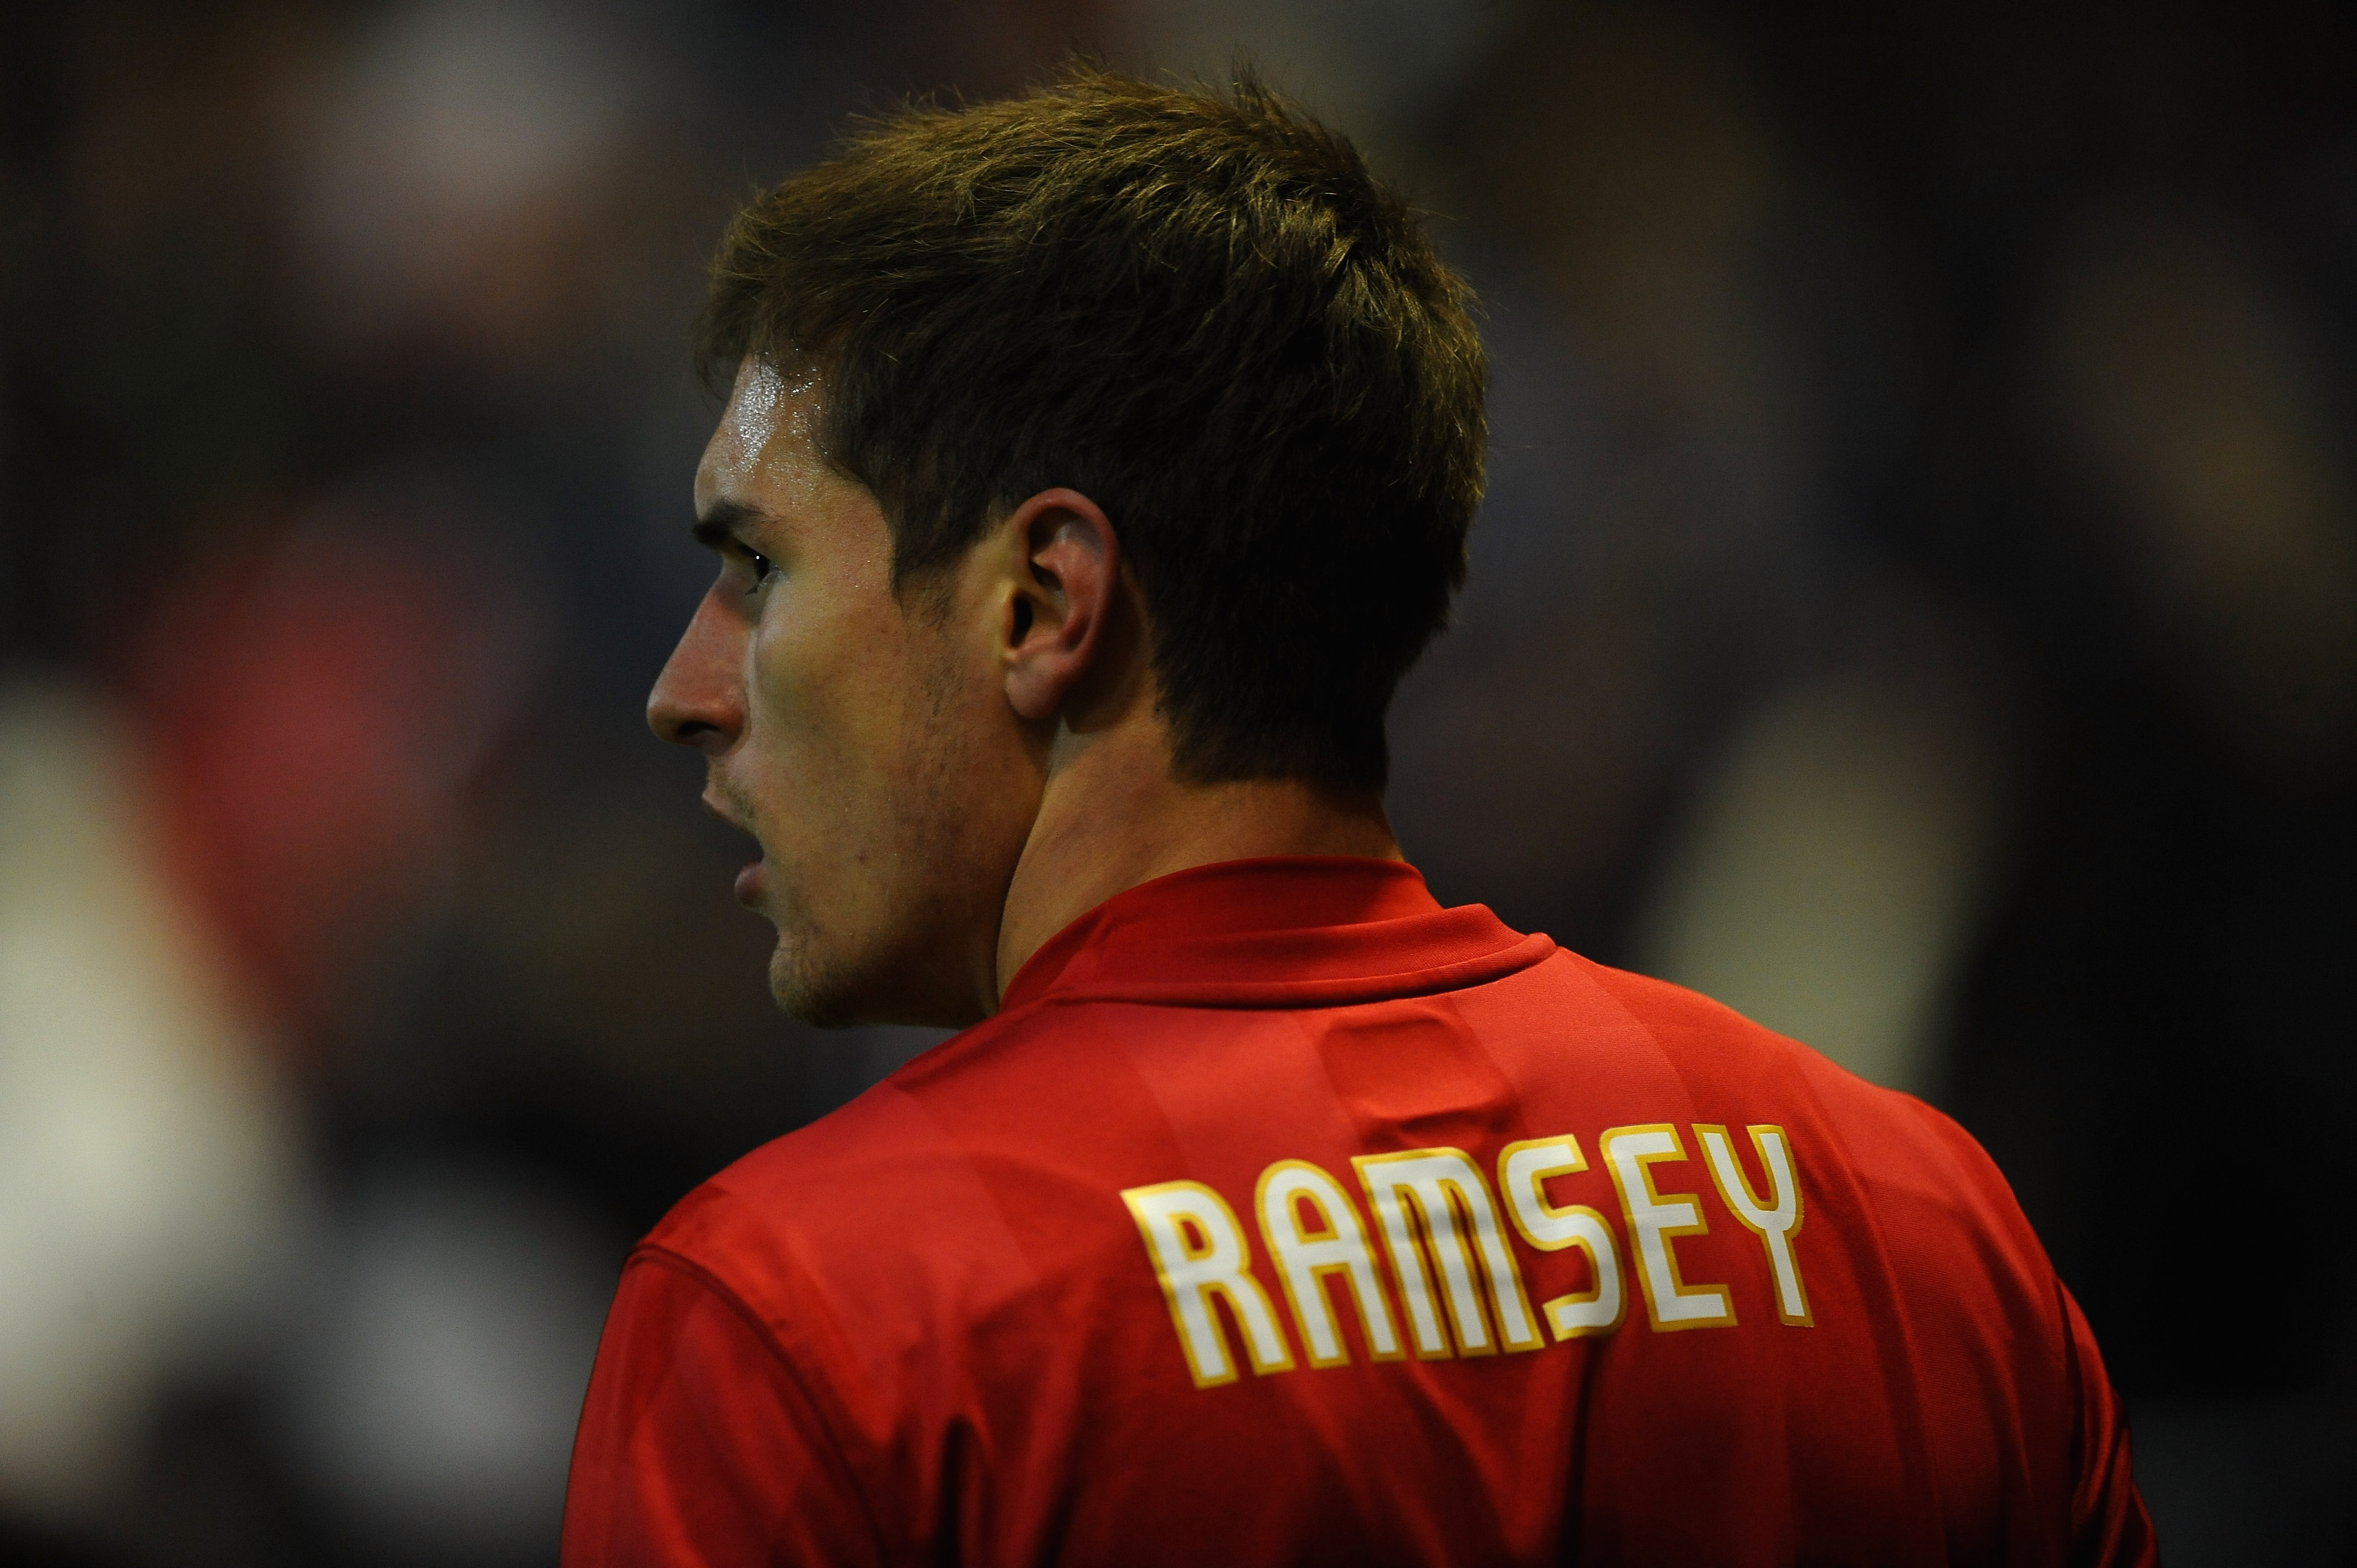 NOTTINGHAM, ENGLAND - DECEMBER 18:  Arron Ramsey of Nottingham Forest in action during the npower Championship match between Nottingham Forest and Crystal Palace at the City Ground on December 18, 2010 in Nottingham, England.  (Photo by Laurence Griffiths